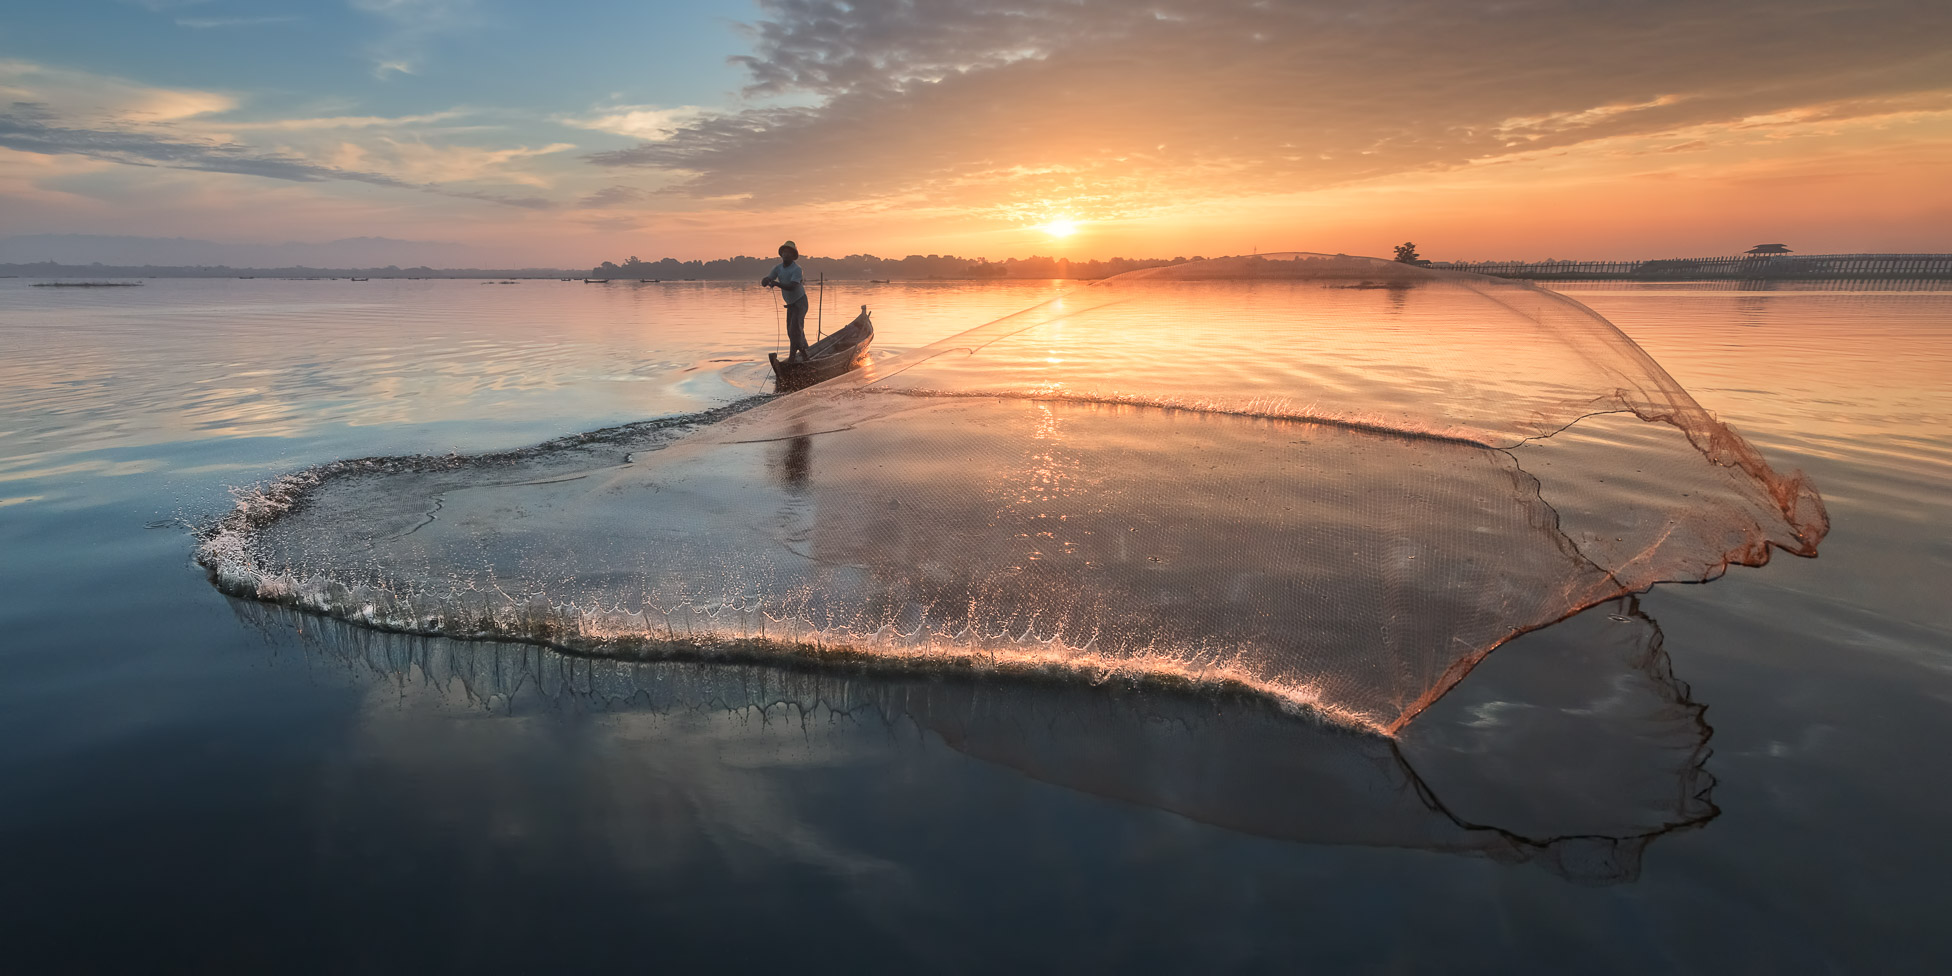 Fisherman Throwing Net Early in the Morning, Taung Tha Man Lake, Mandalay, Myanmar